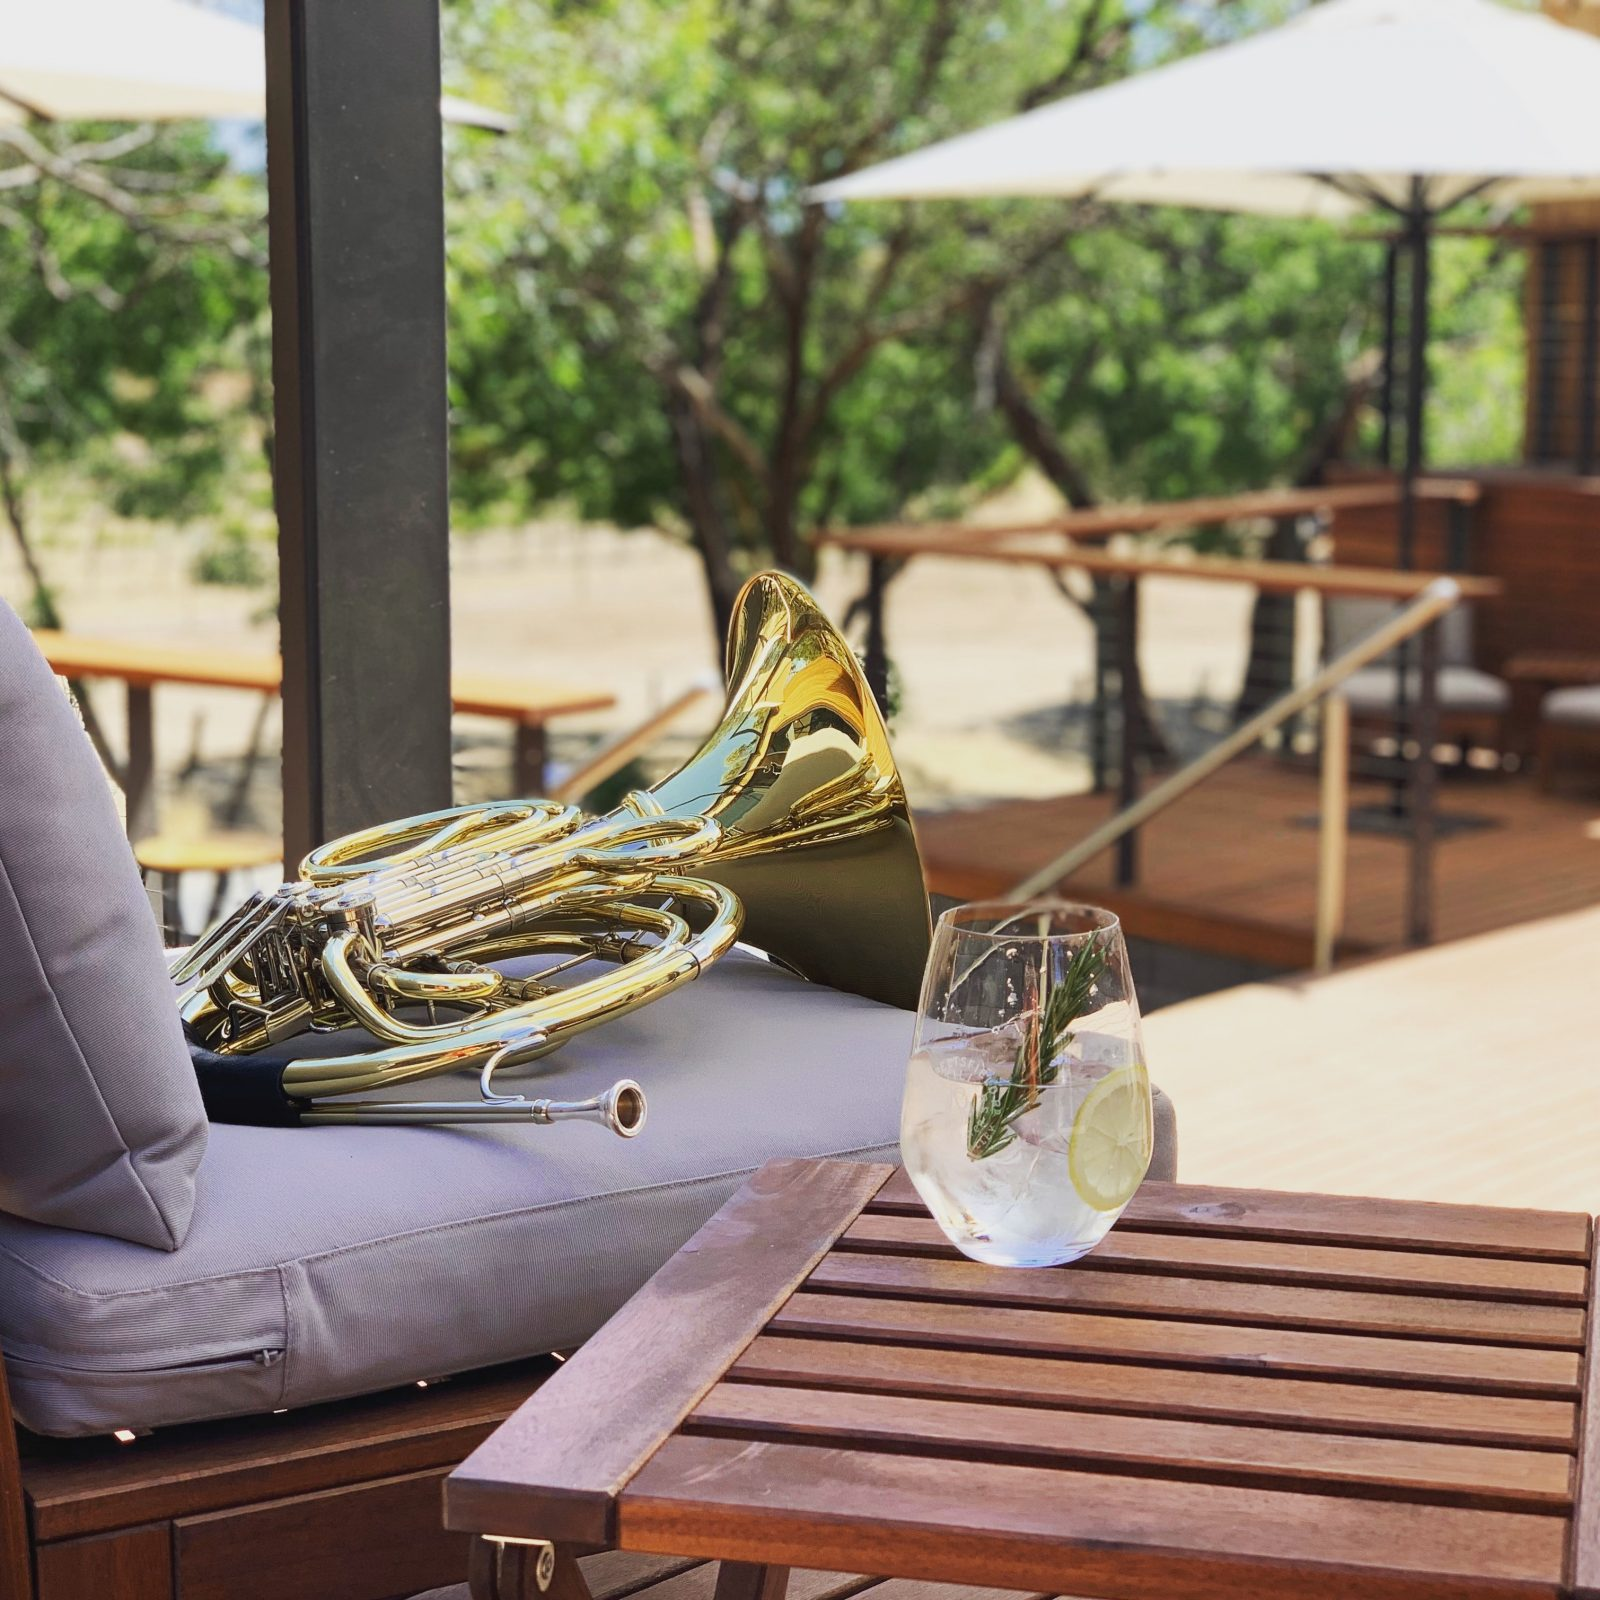 Relax with live music, Seppeltsfield Road Distillers gin and Barossa Street Food catering.